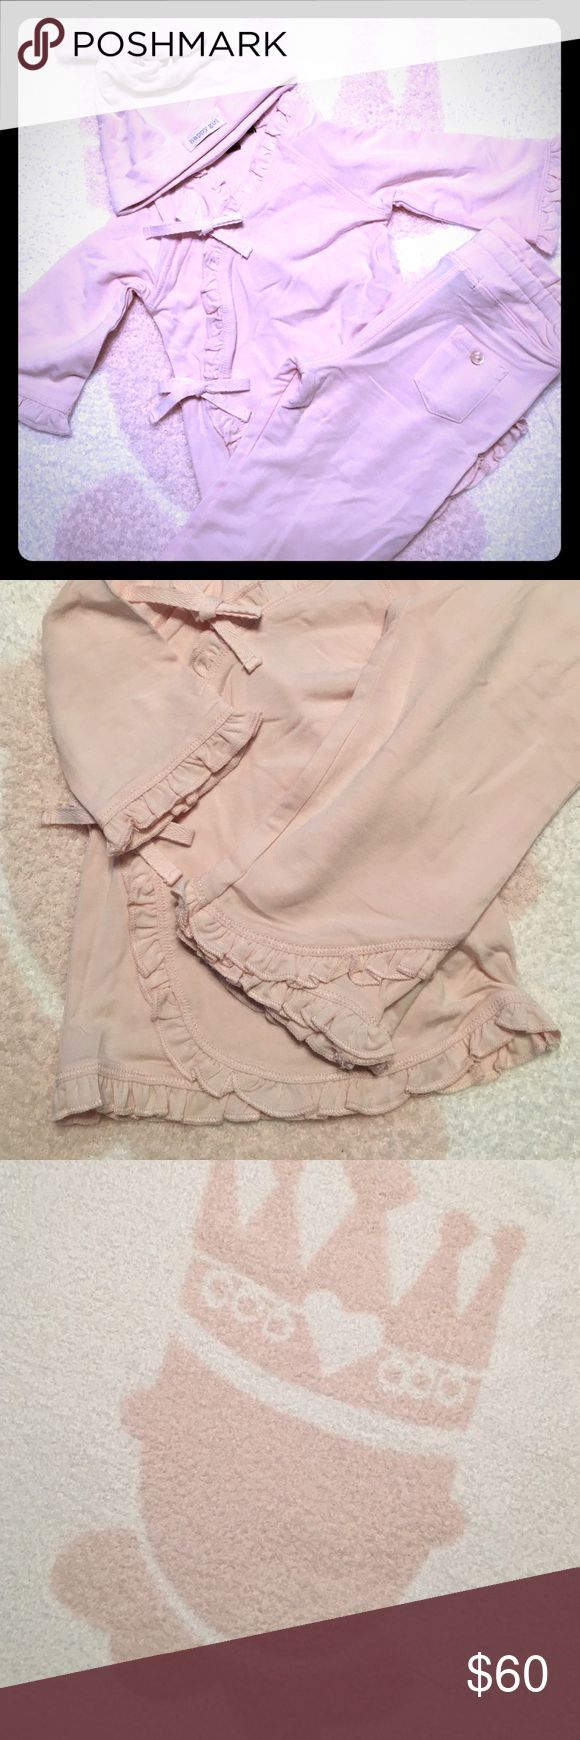 NWT Barefoot Dreams Baby 3-Pc Outfit & Blanket Please feel free to ask questions... Barefoot Dreams Matching Sets